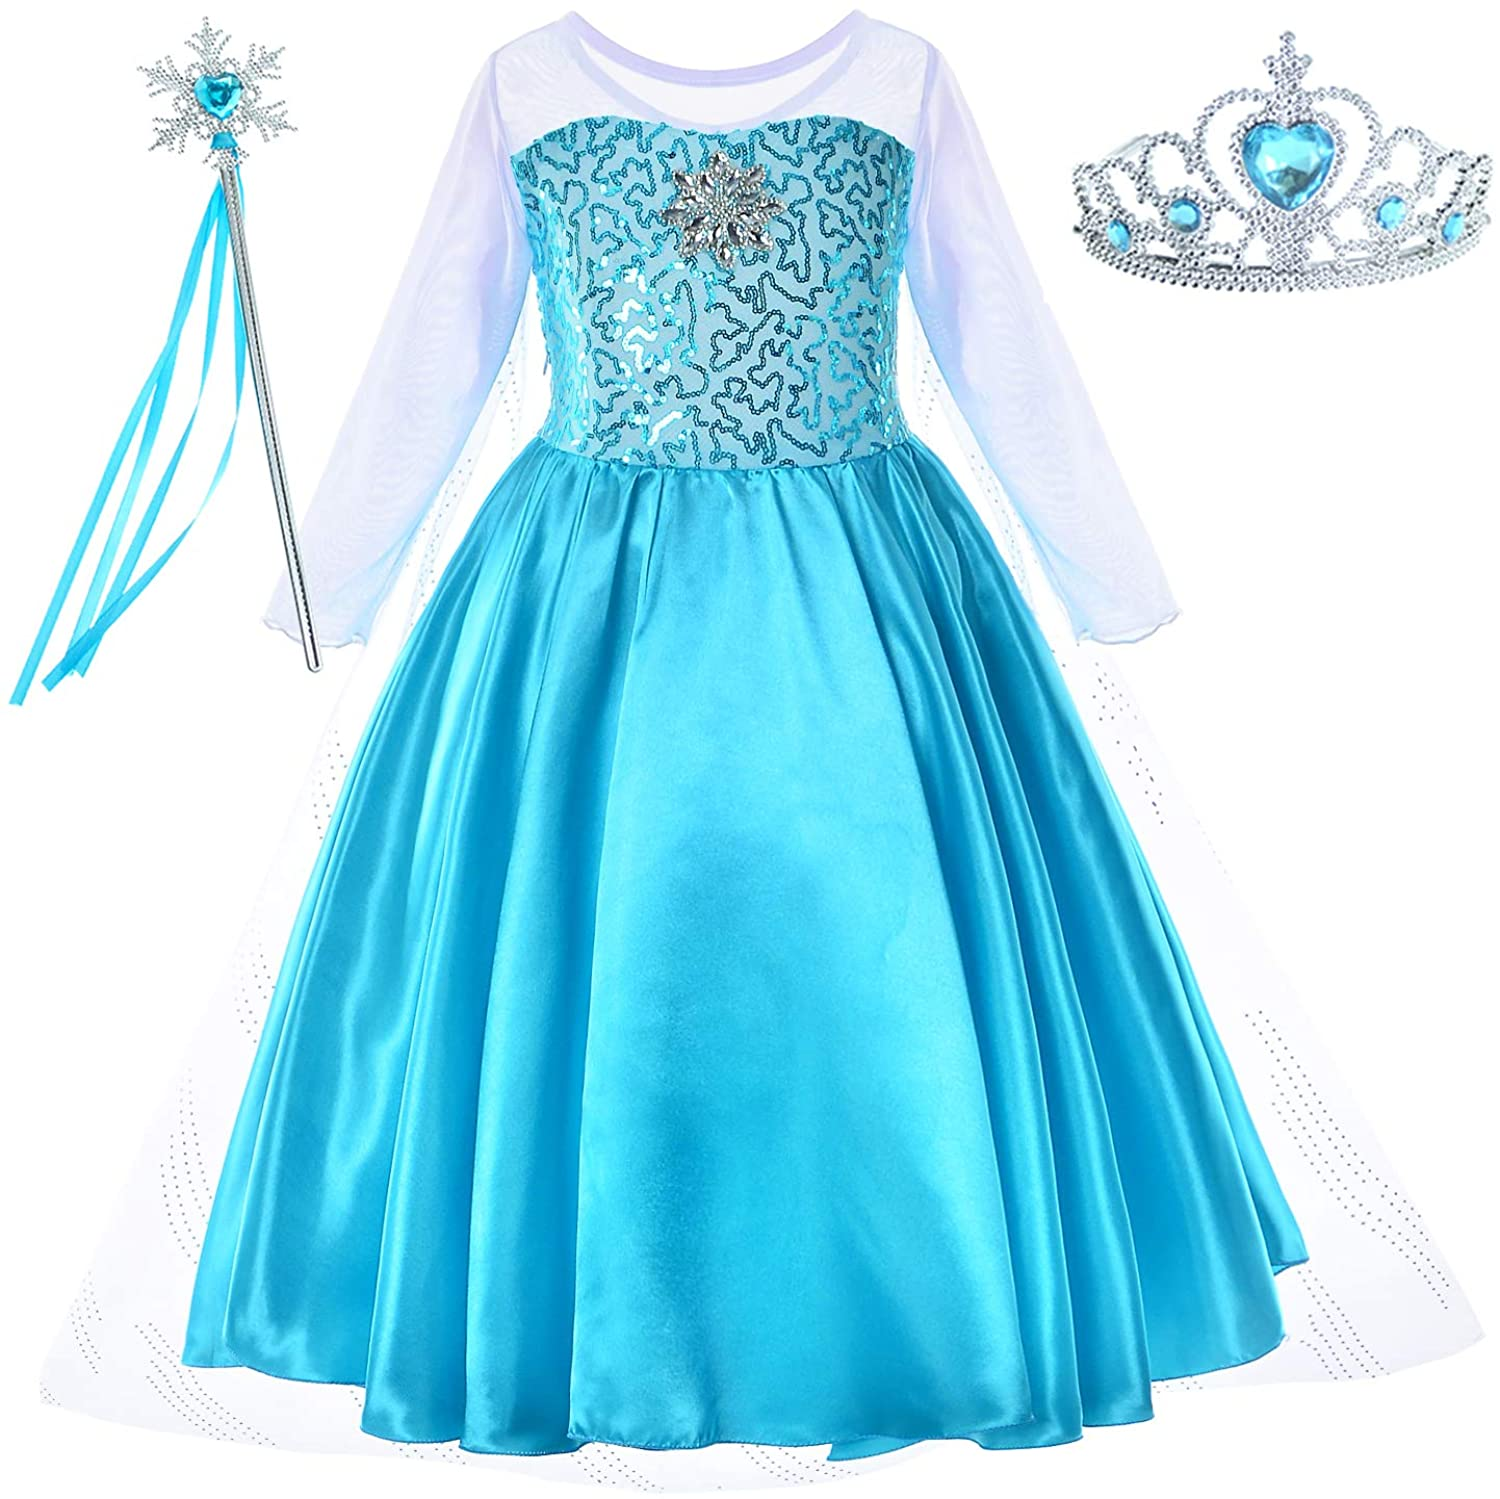 Party Chili Princess Costume for Girls Dress Up with Accessories Toddler Little Girls 2-10 Years